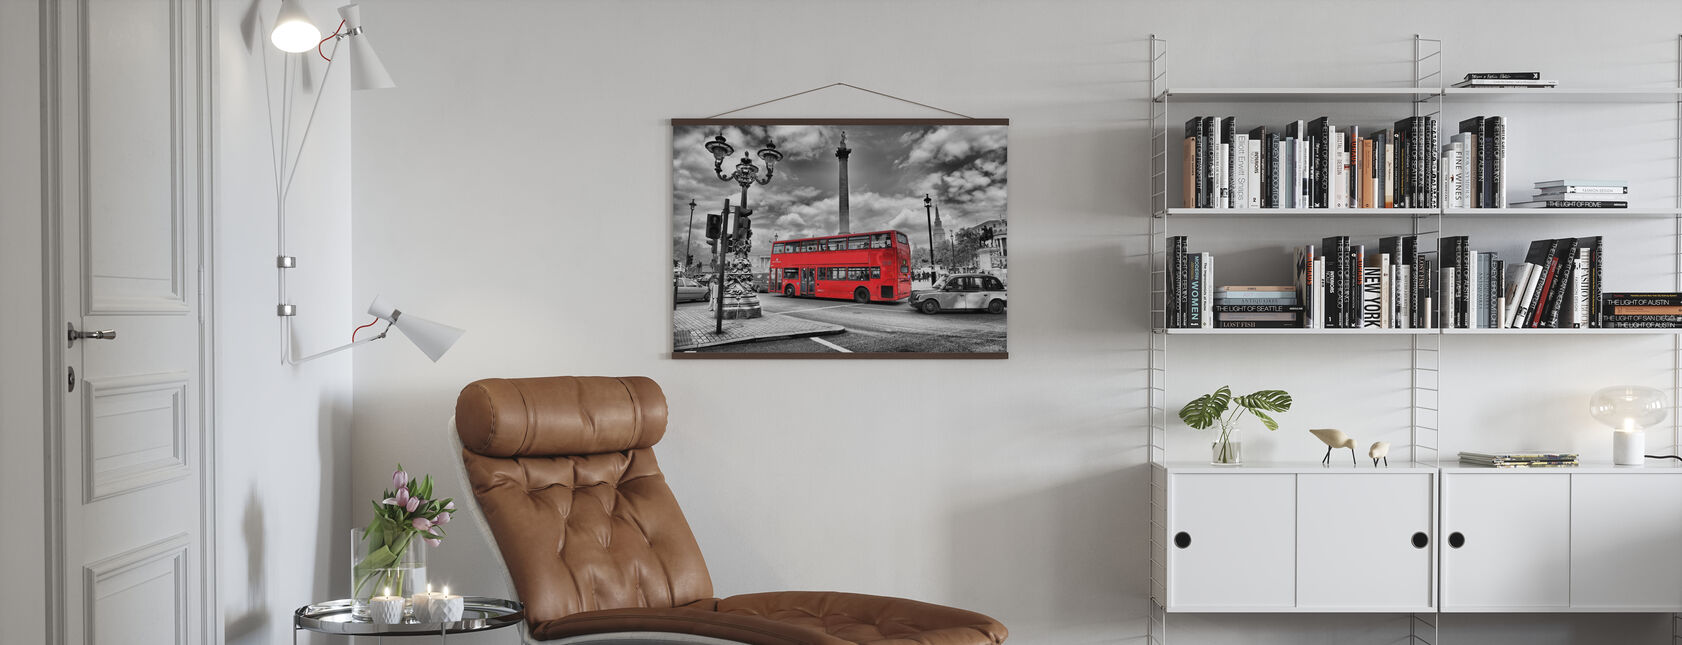 London Bus - Colorsplash - Poster - Wohnzimmer